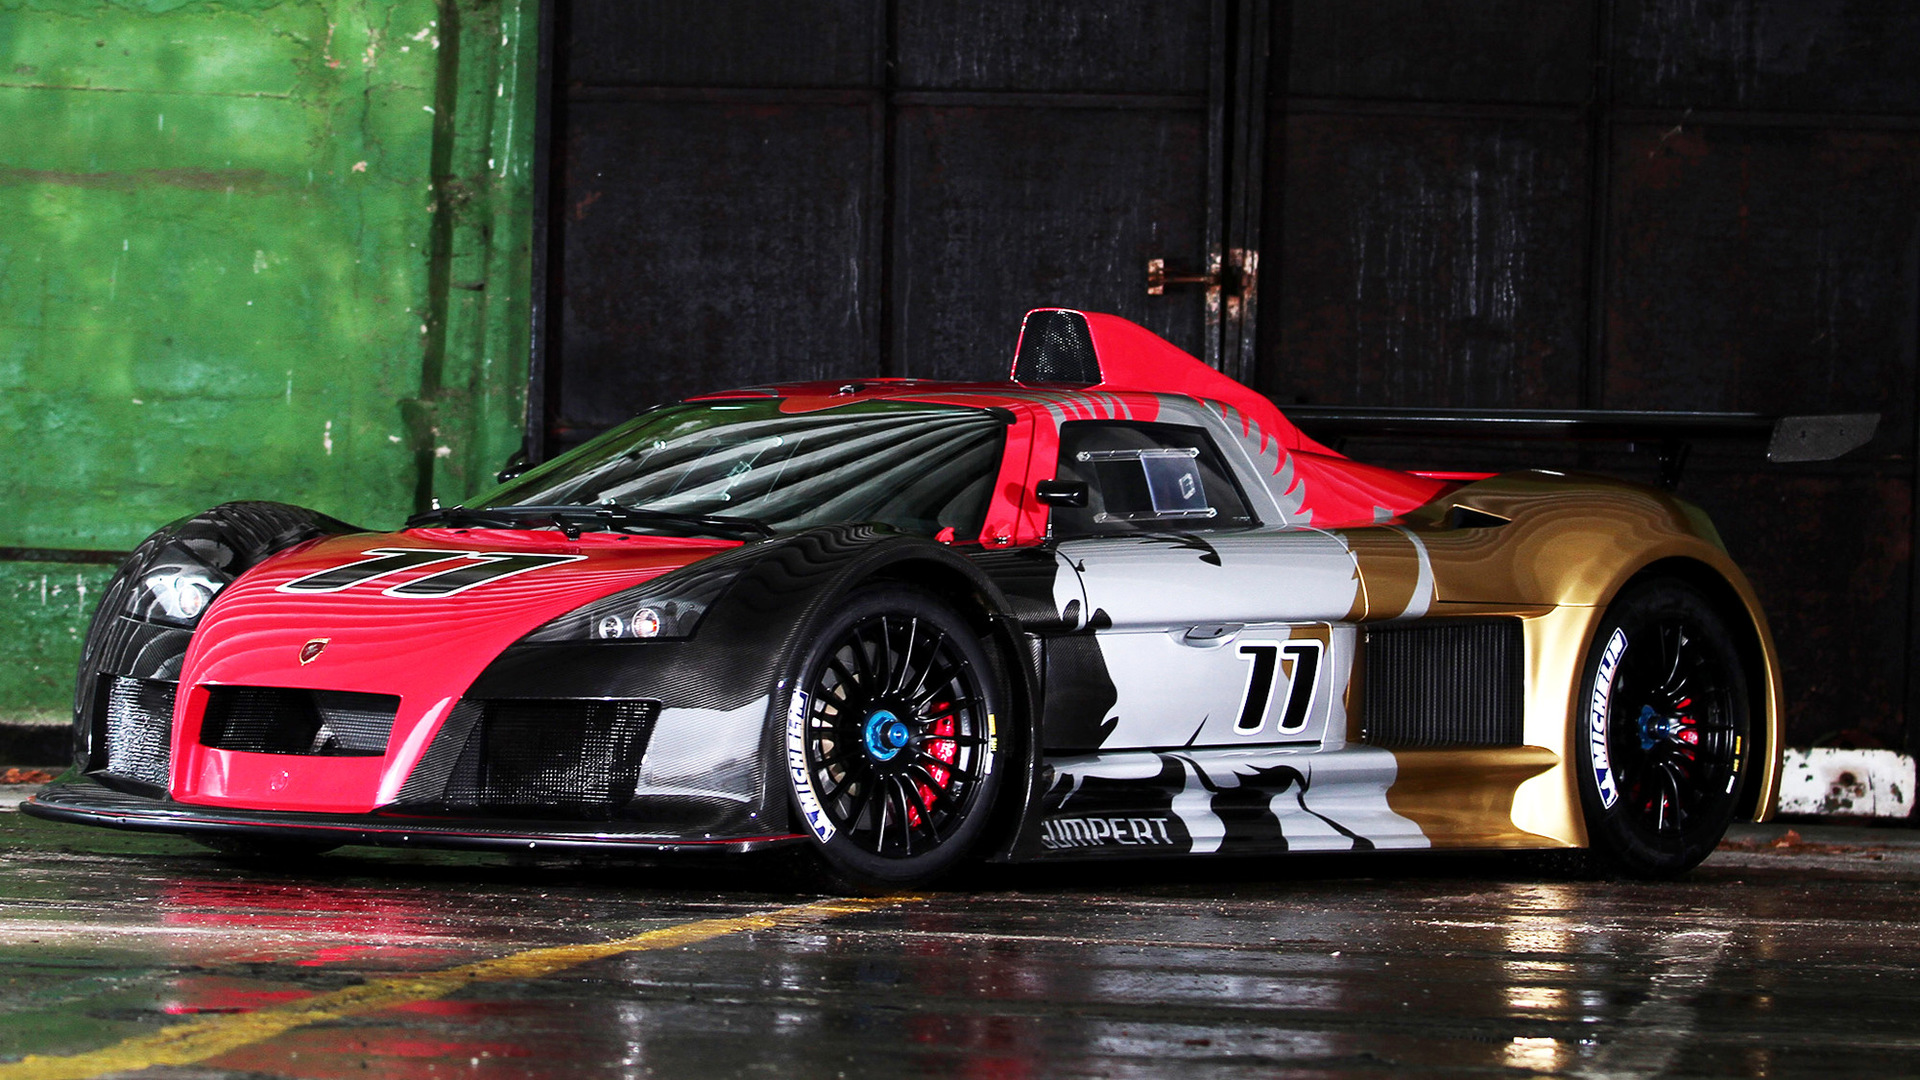 Ford Muscle Cars >> Gumpert Apollo R (2012) Wallpapers and HD Images - Car Pixel